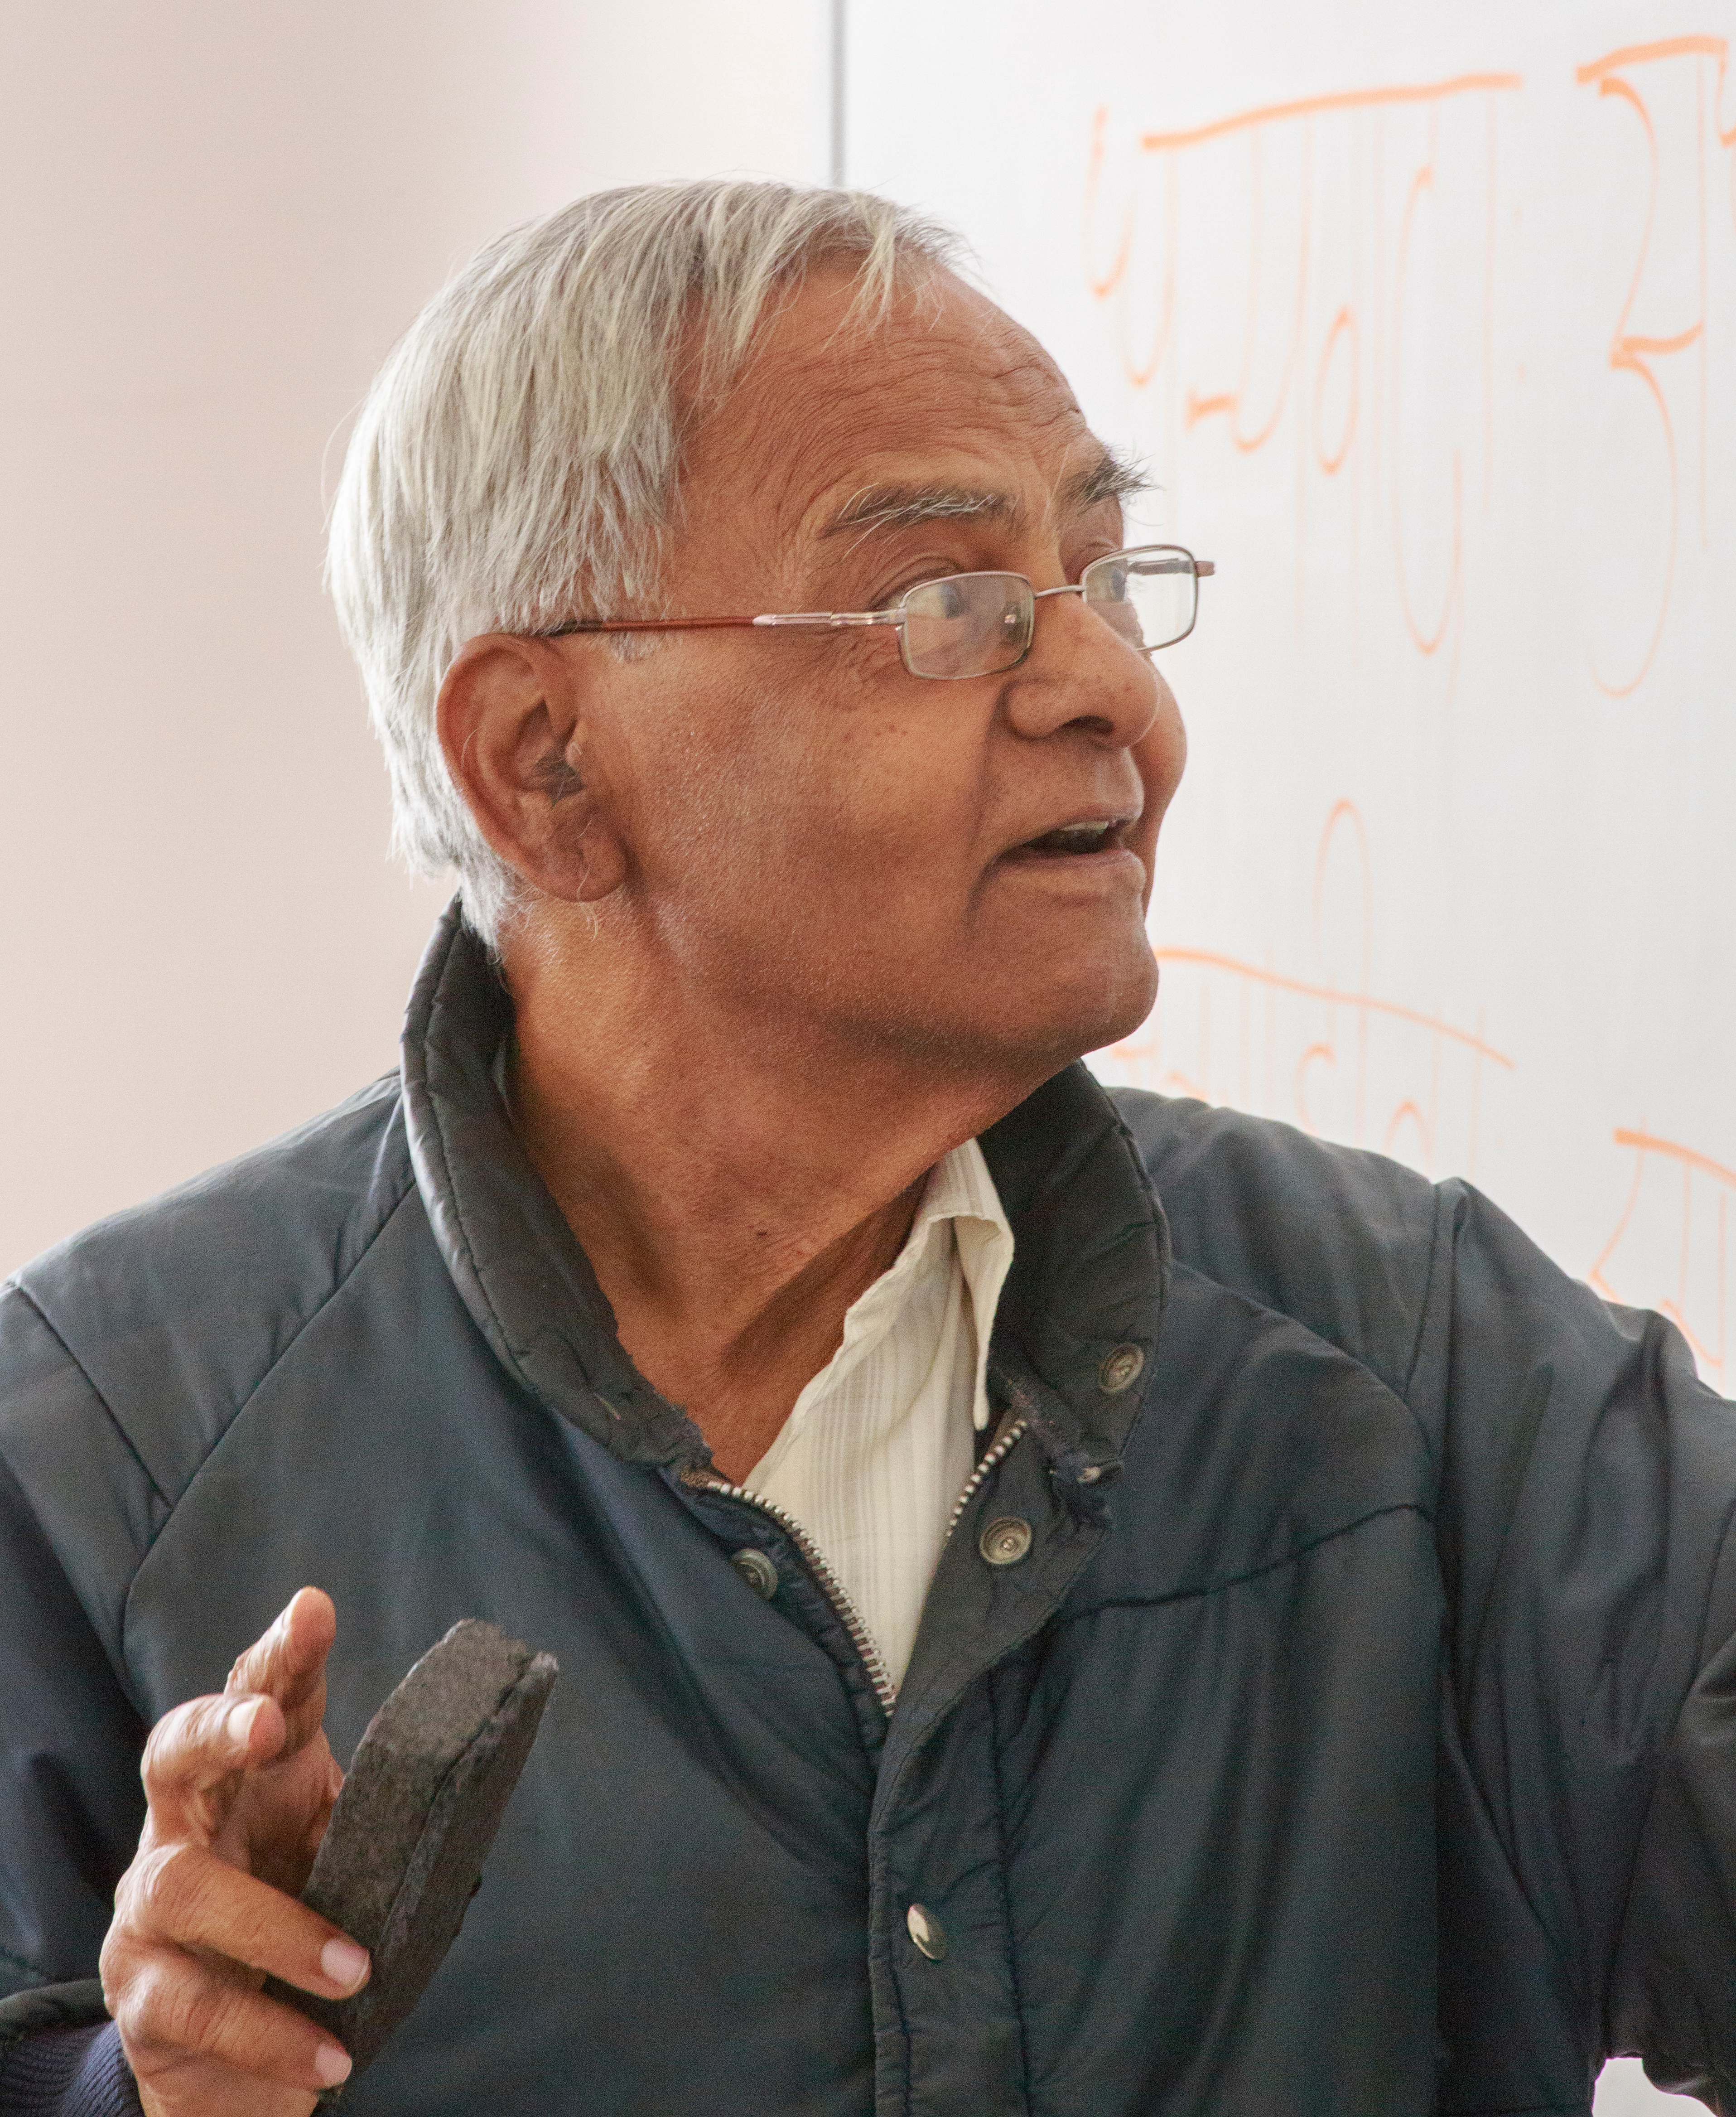 Professor Thite lecturing in class about the Vedic fires